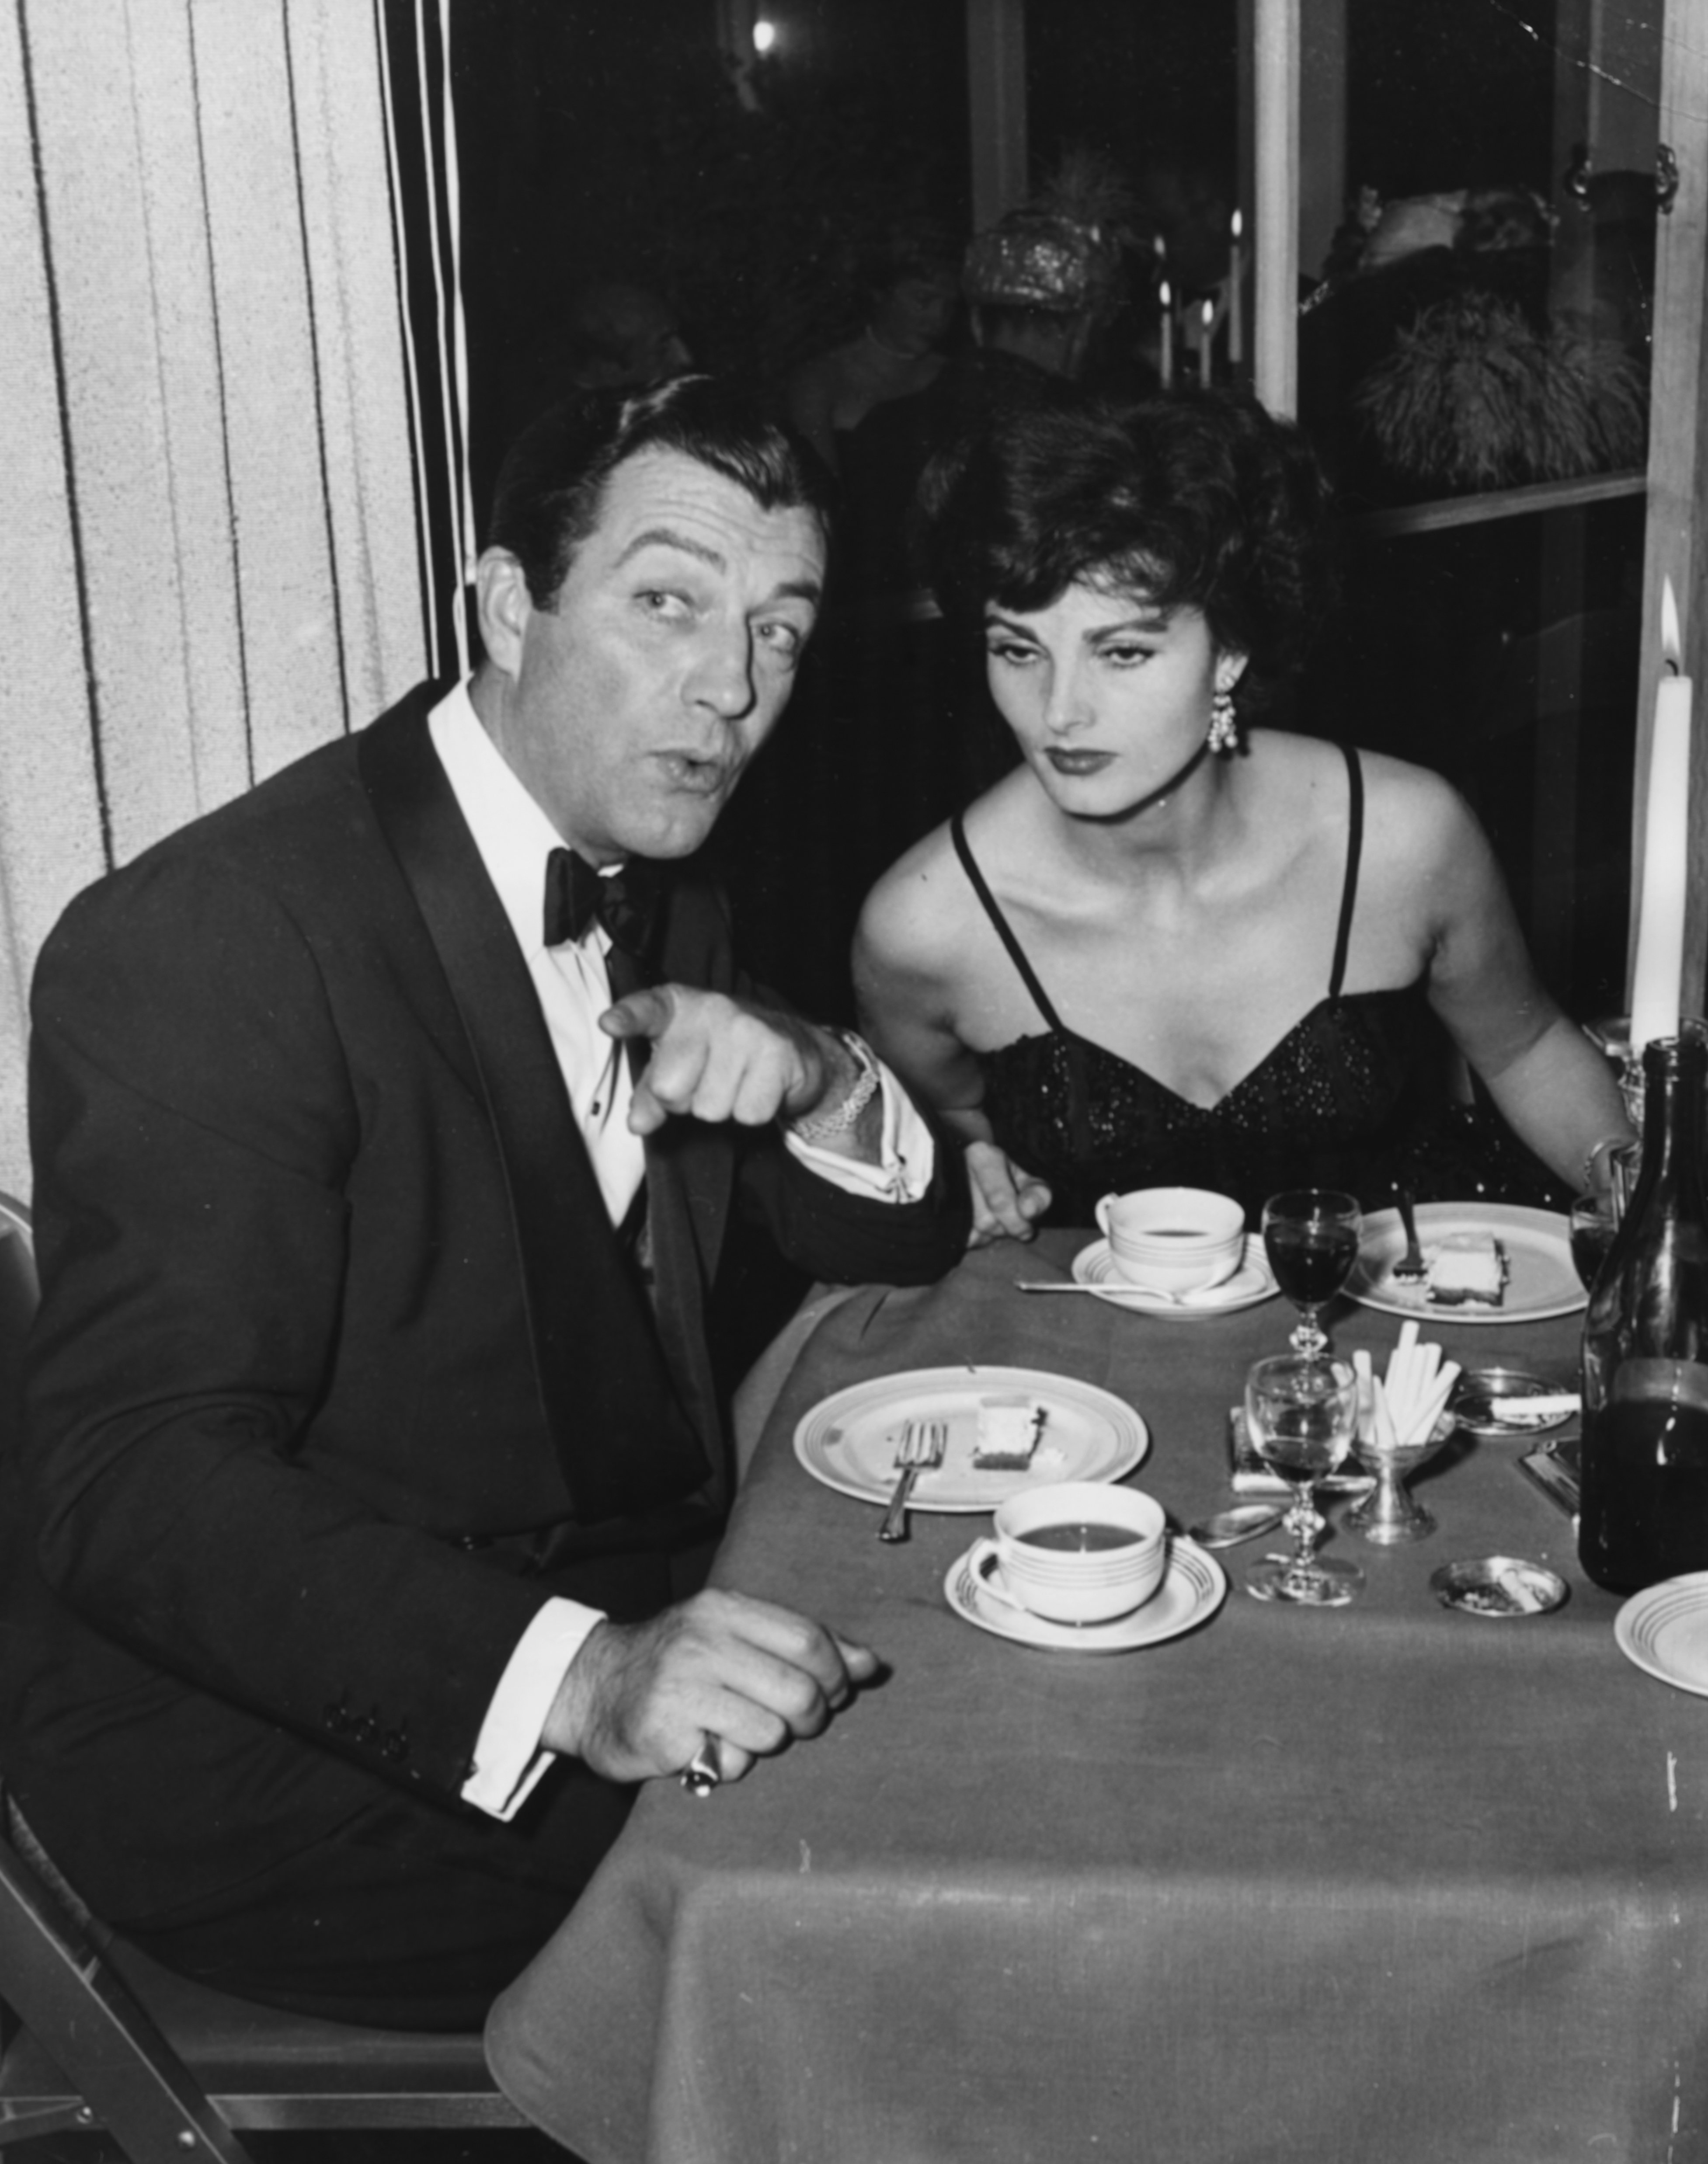 Actor Robert Taylor and his wife Ursula Thiess eating cheesecake and drinking coffee after dinner together in Hollywood, March 12th 1954.  | Source: Getty Images